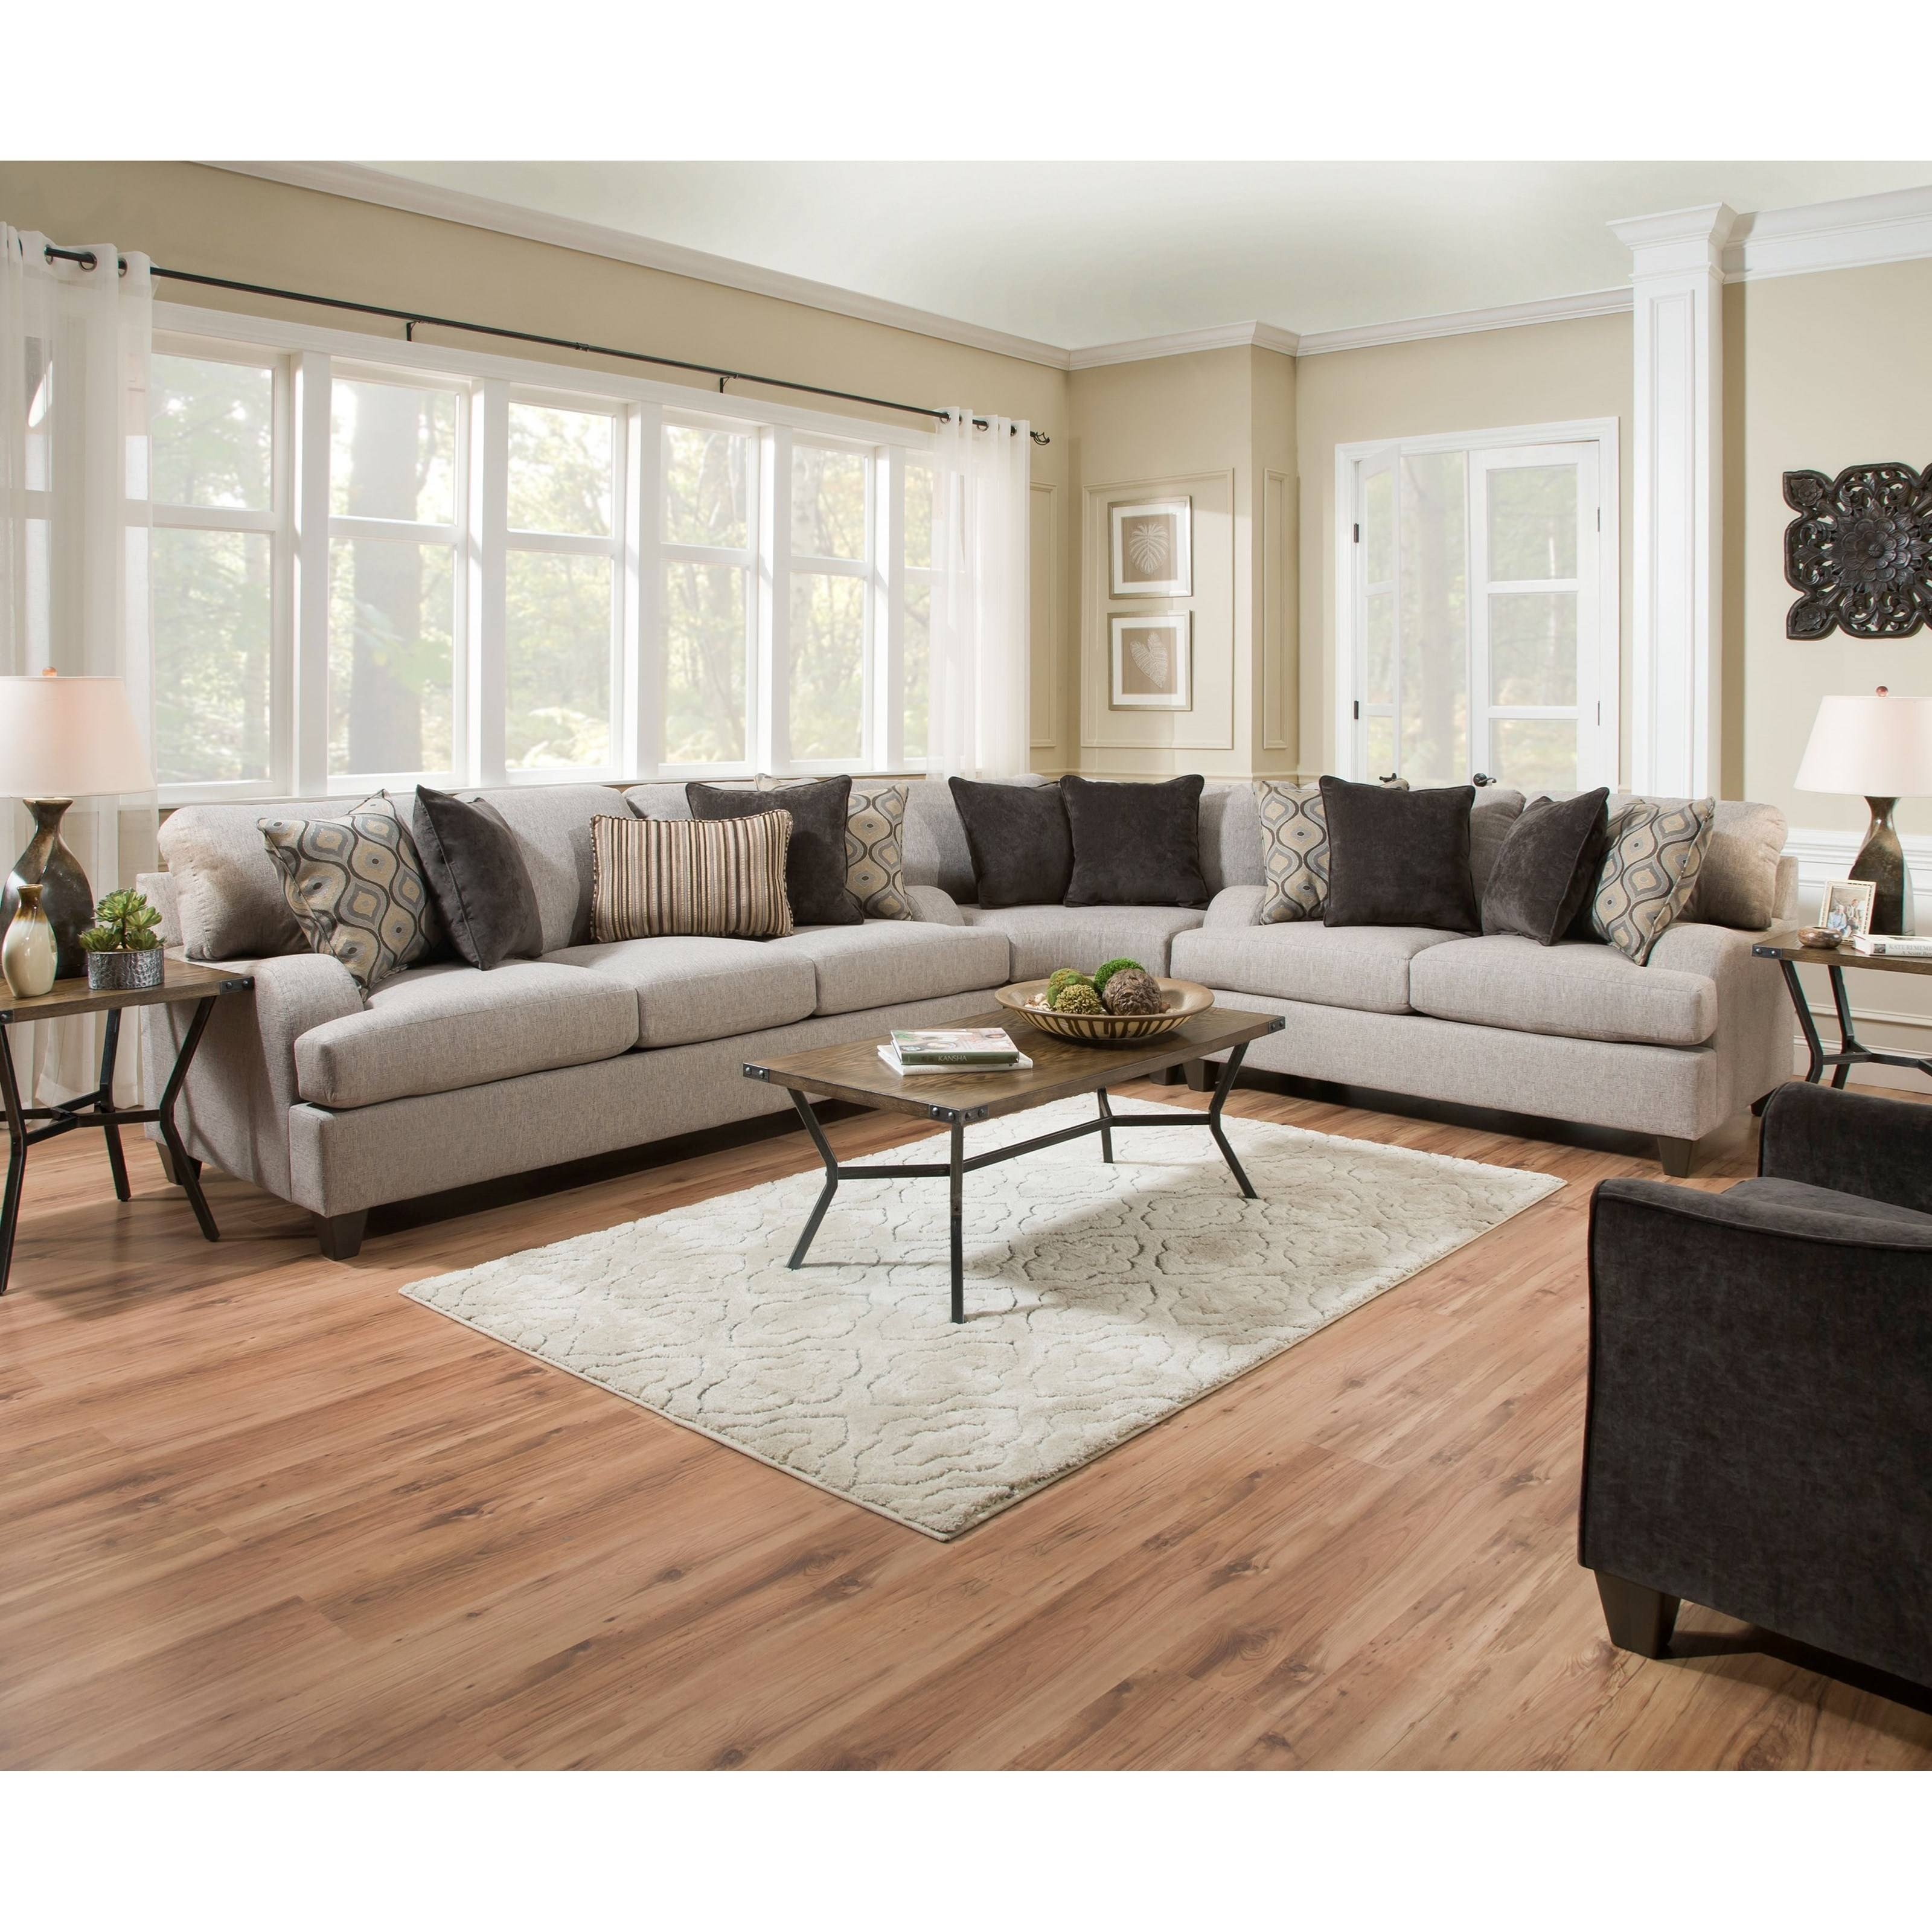 Simmons Upholstery 4002 Transitional Sectional Sofa - Royal within Simmons Sectional Sofas (Image 18 of 30)